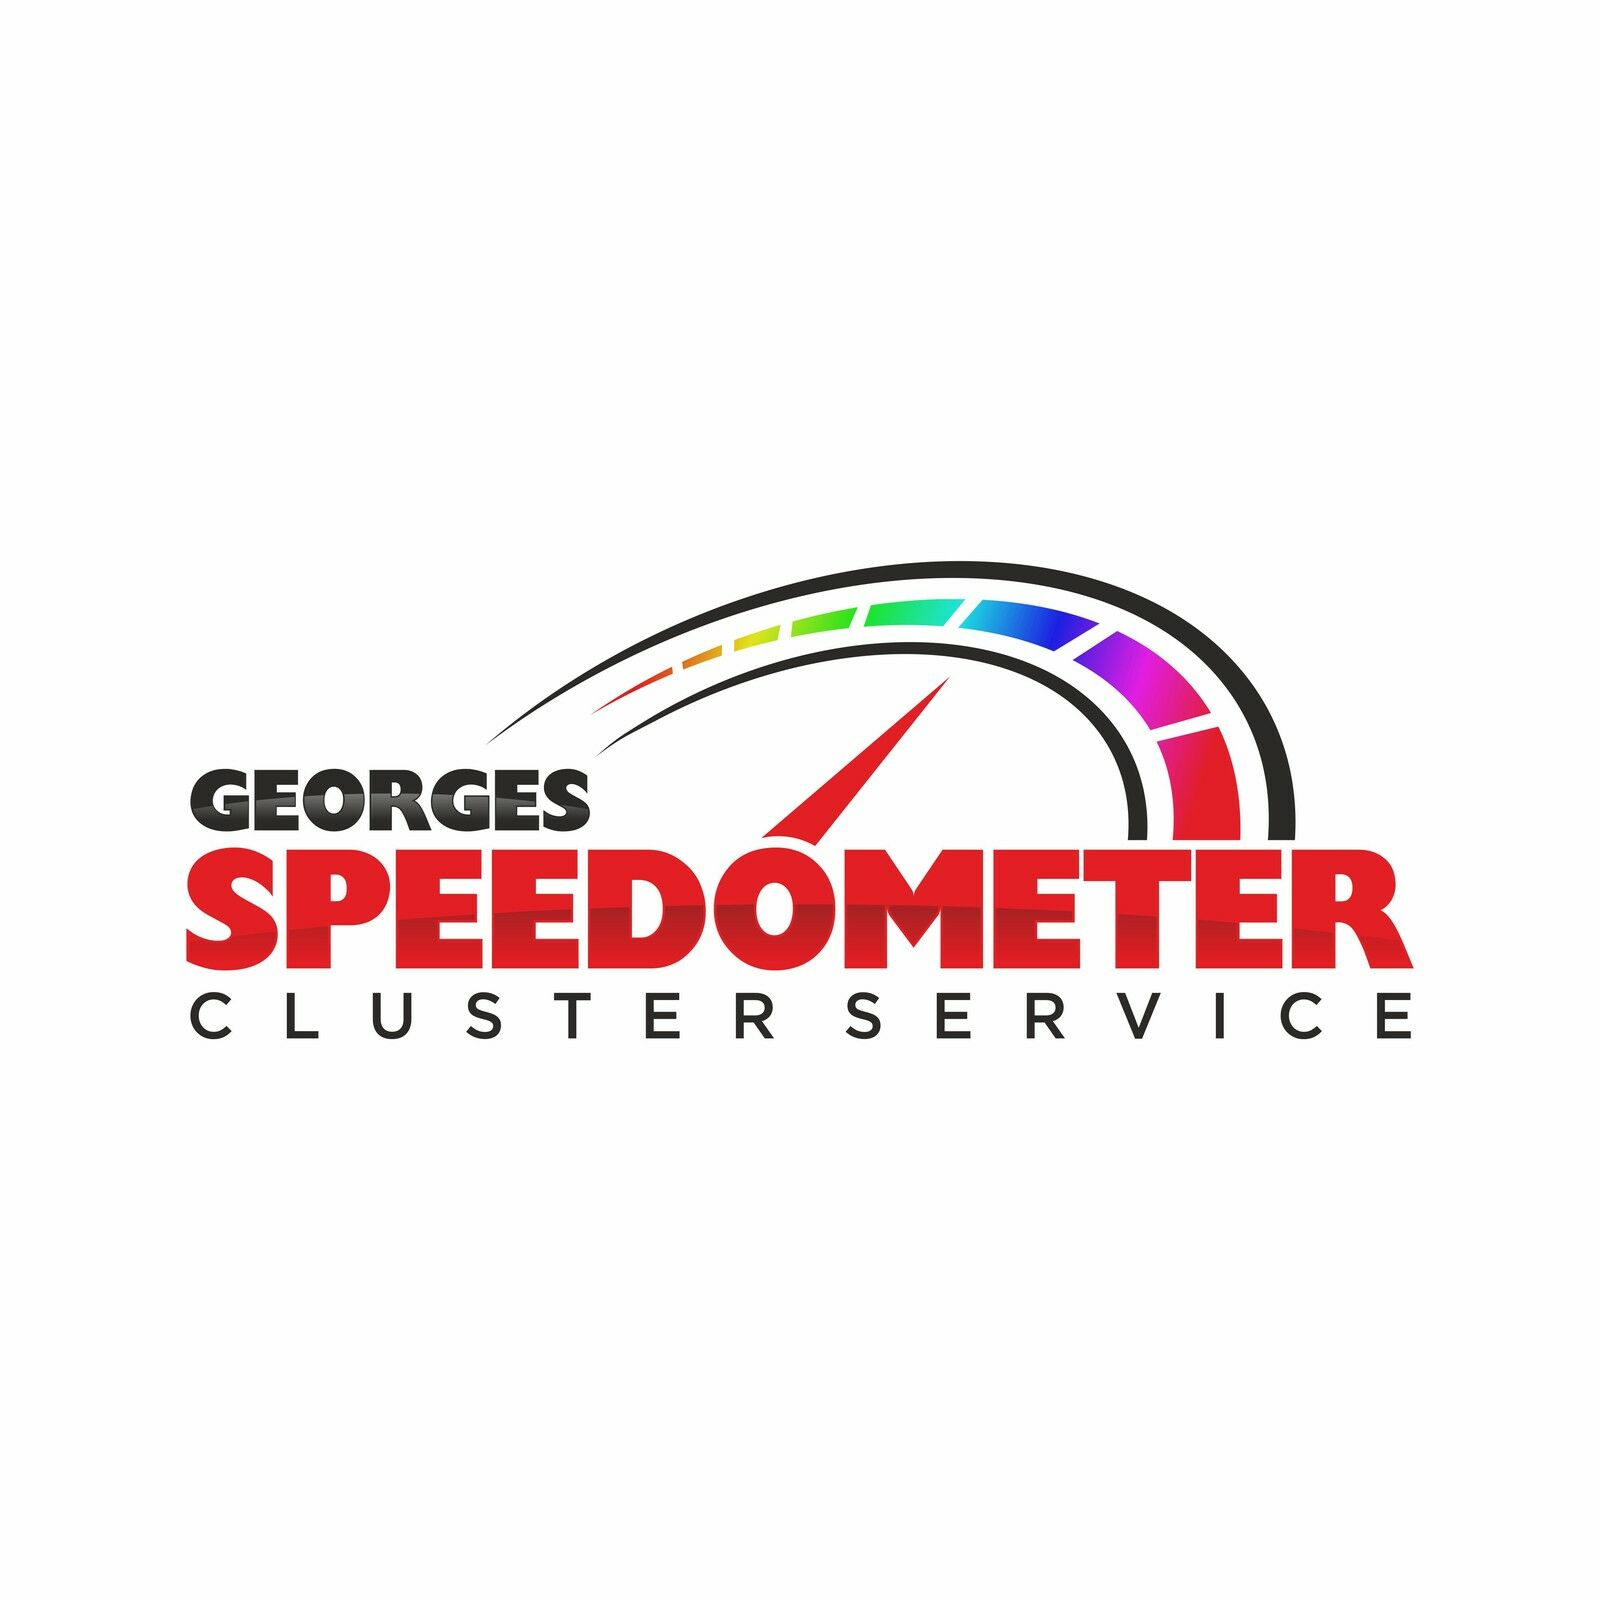 Georgesautoelectronics